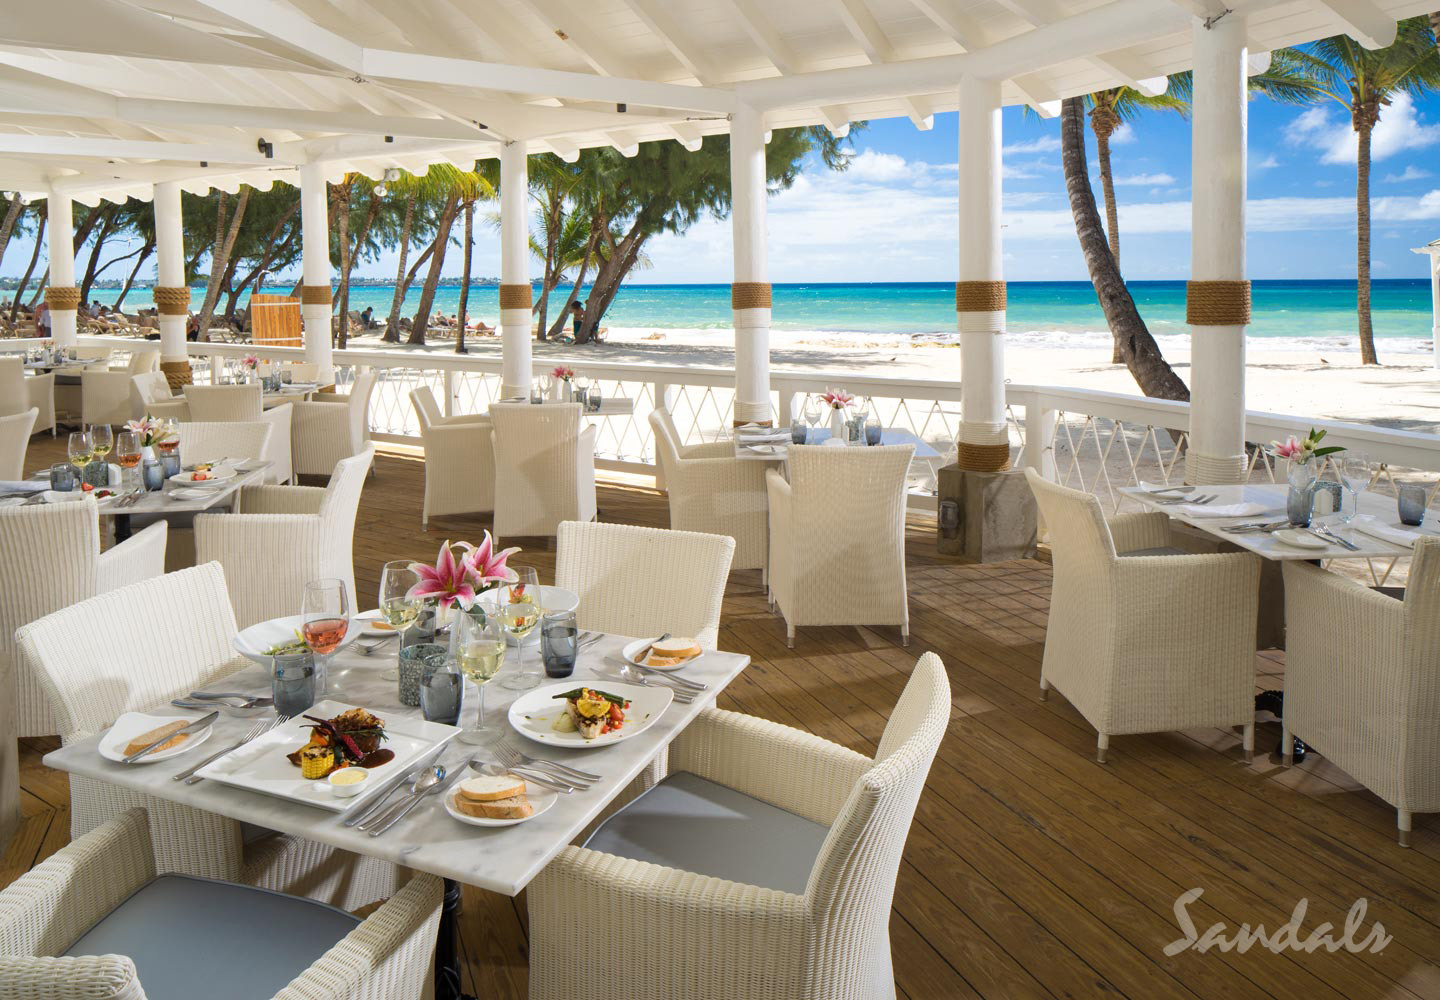 Travel Agency All-Inclusive Resort Sandals Barbados 21